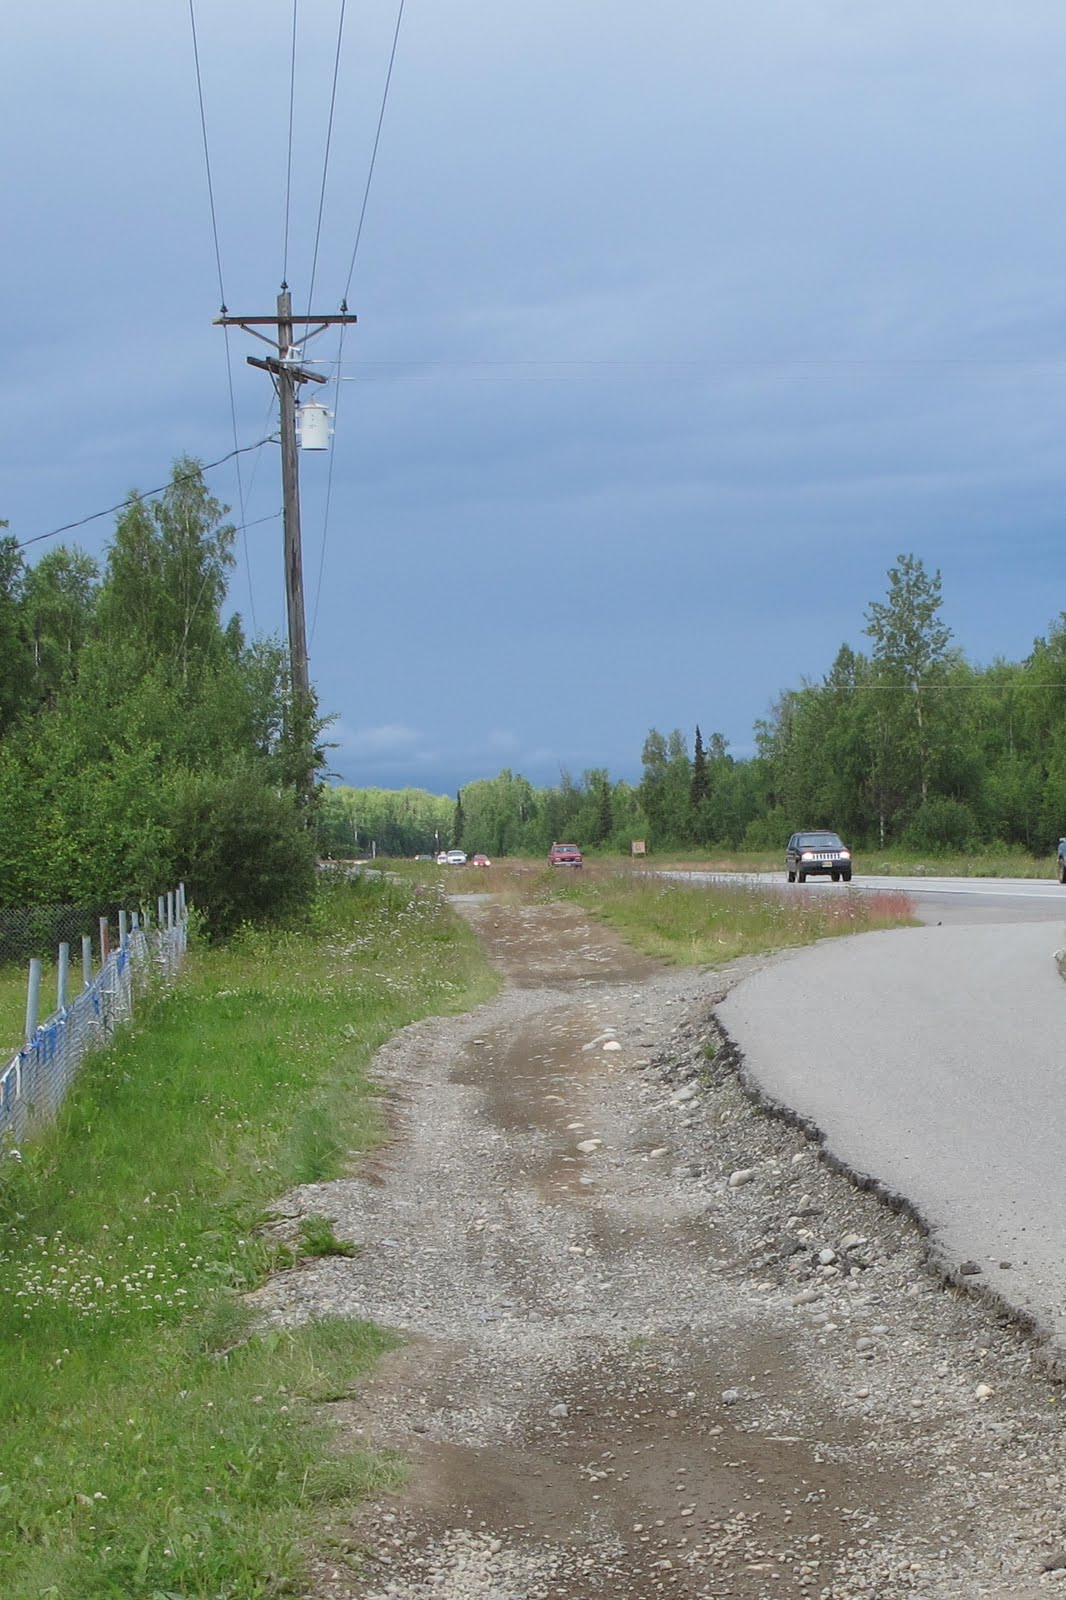 One of the things we've noticed in Alaska is ATV paths beside every road.  In Chico they have bicycle and jogging paths, but here they not only have  ATV ...